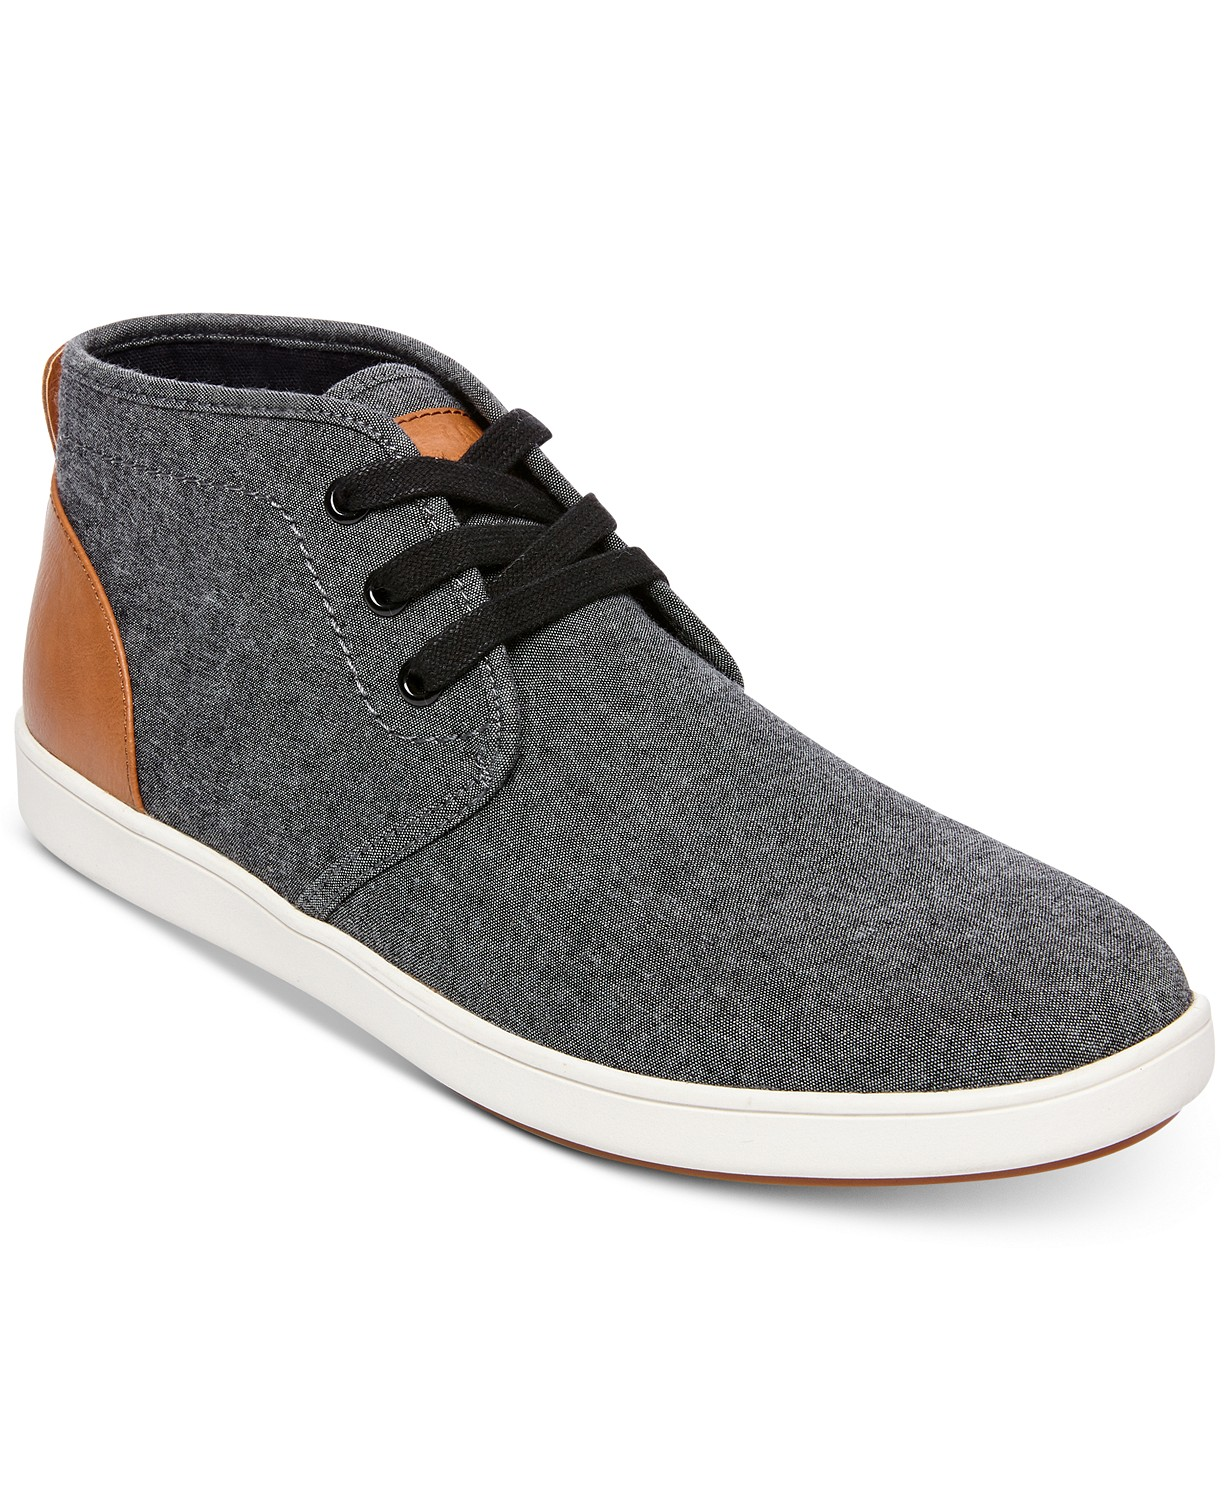 Steve Madden Men's Sneakers